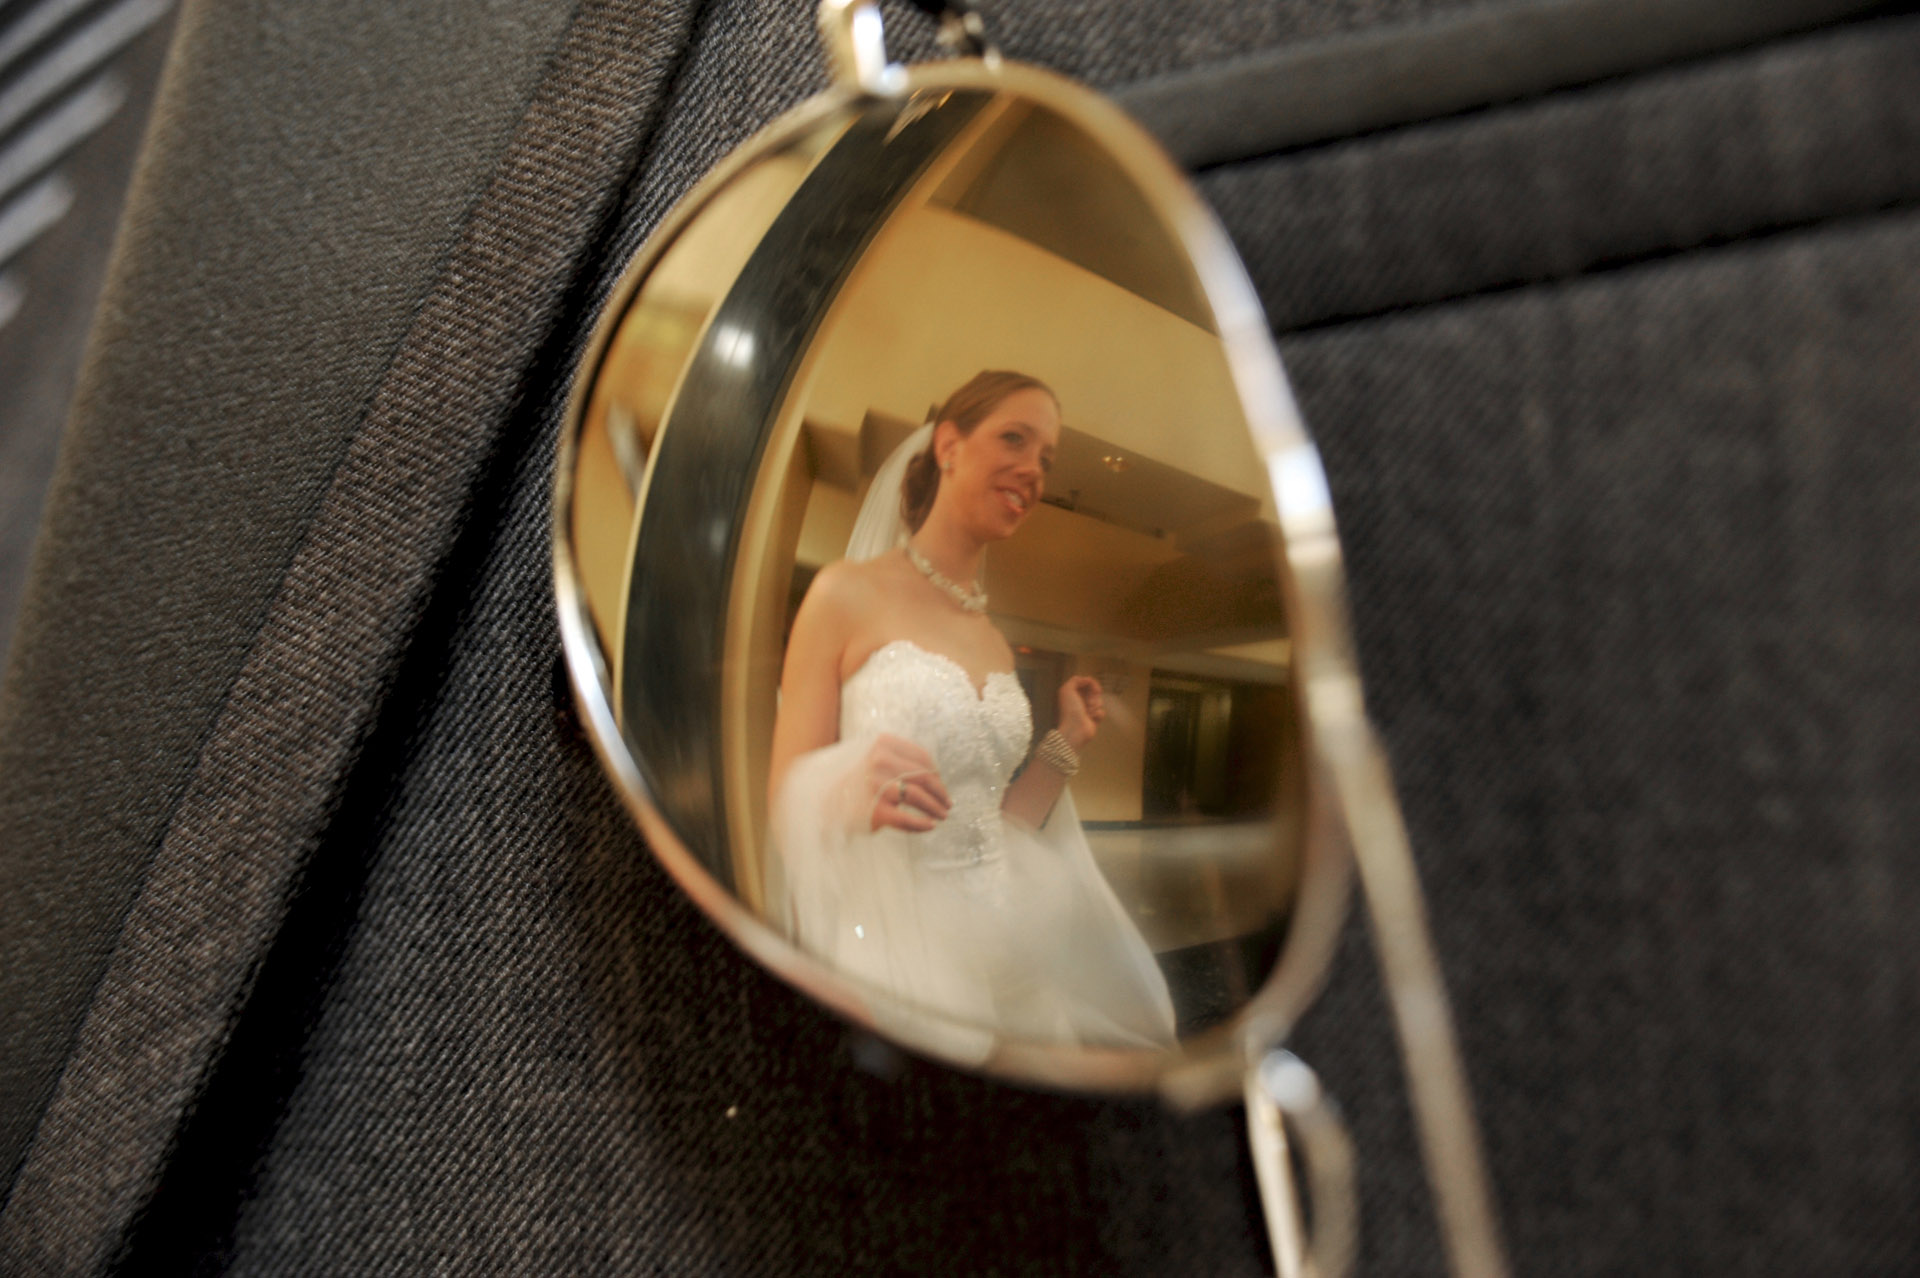 Detroit, Michigan wedding photographer shows the bride reflected in the groom's sunglasses after their first look at the Colony Club in Detroit, Michigan.